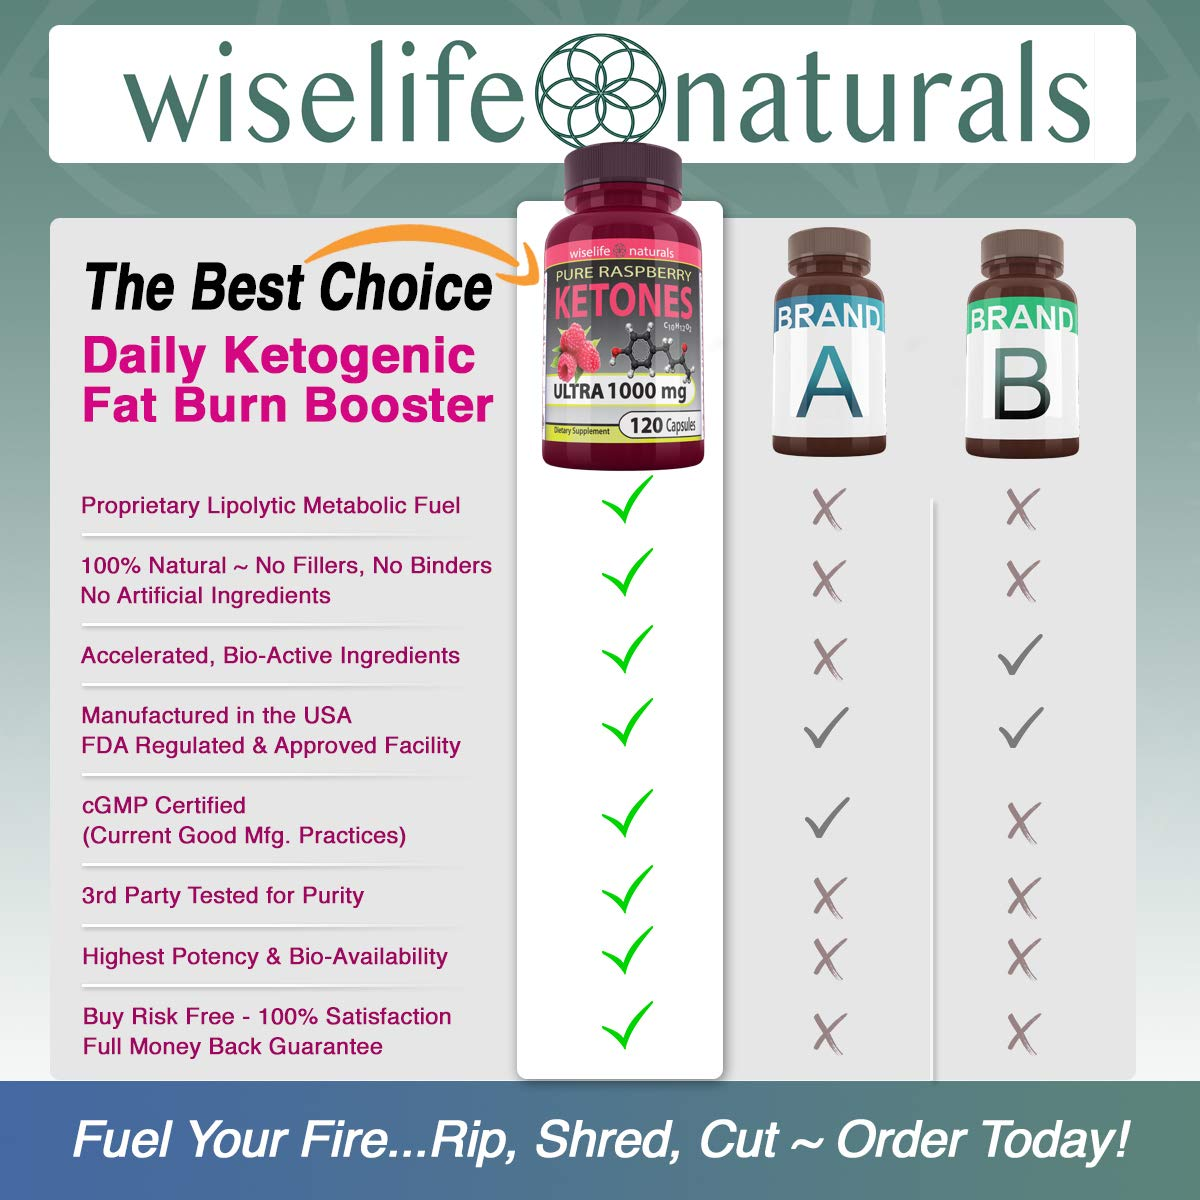 Best Fast Metabolism Slimming Pill - Pure Raspberry Ketones Fresh 1000mg Plus Max Burn, Lose Fat Quickly Proven Supports Rapid Ketogenic Diet Weight Loss, Works Naturally, Slim at Home No Side Effects by WiseLifeNaturals (Image #5)